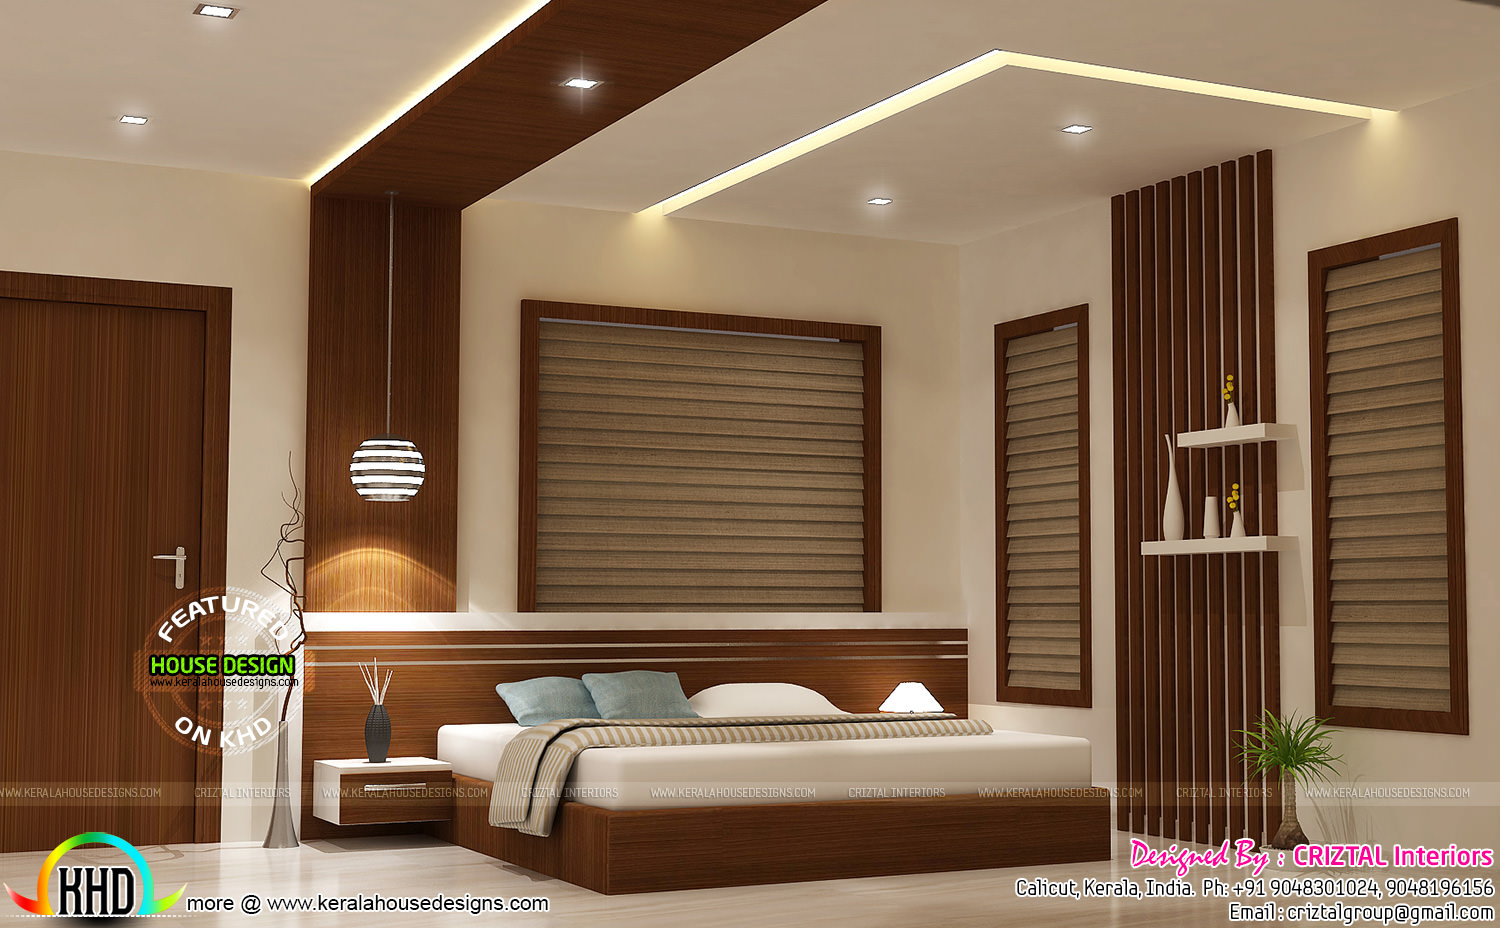 Bedroom dining hall and living interior kerala home for How to design house interior